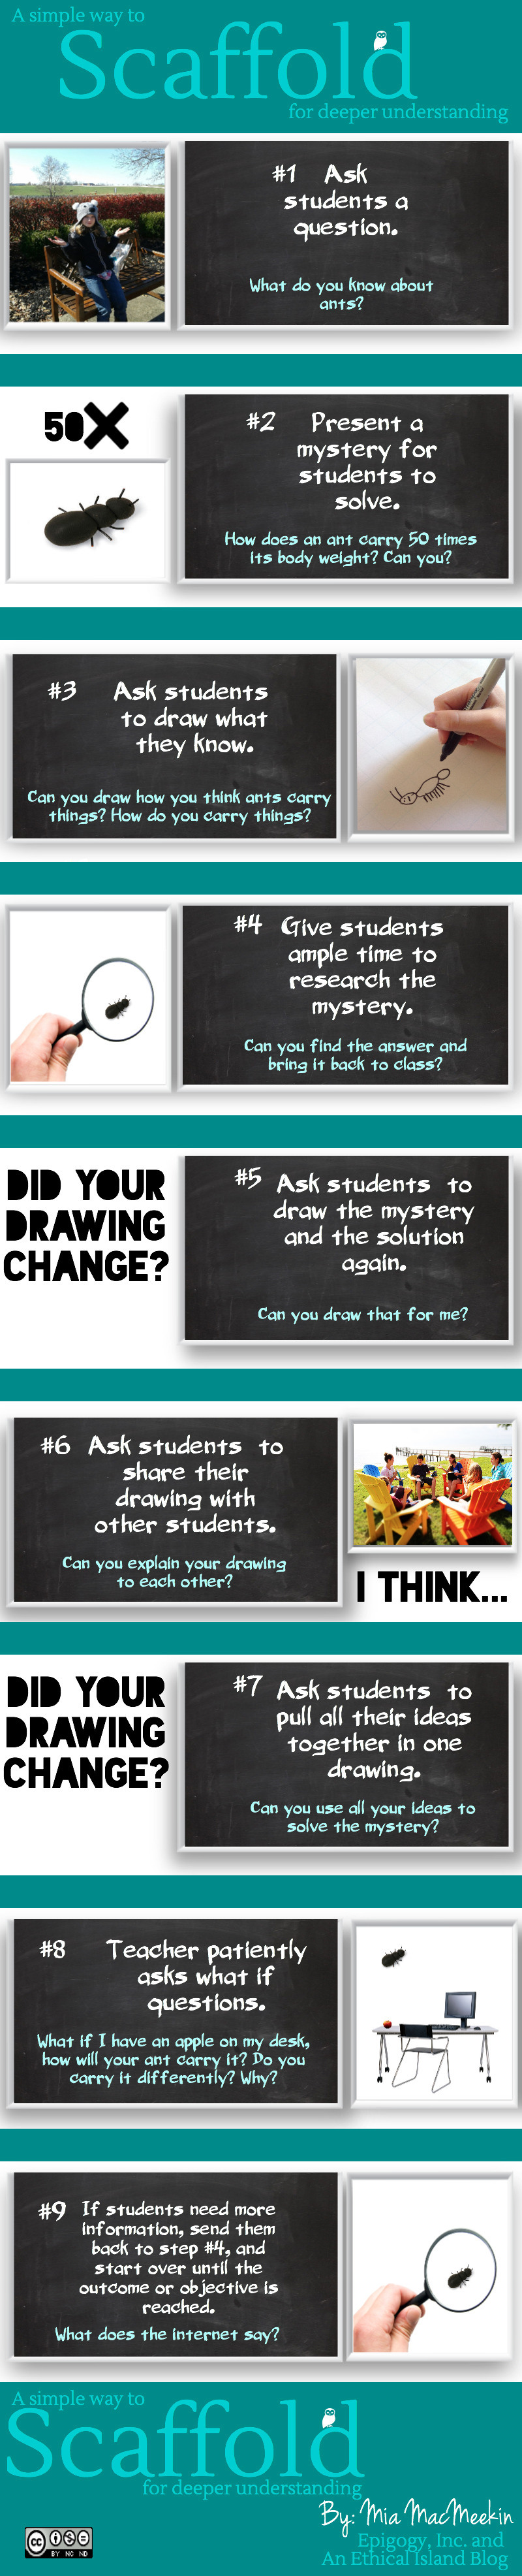 """""""9 Ways to Scaffold for Deeper Understanding"""" (#INFOGRAPHIC)"""